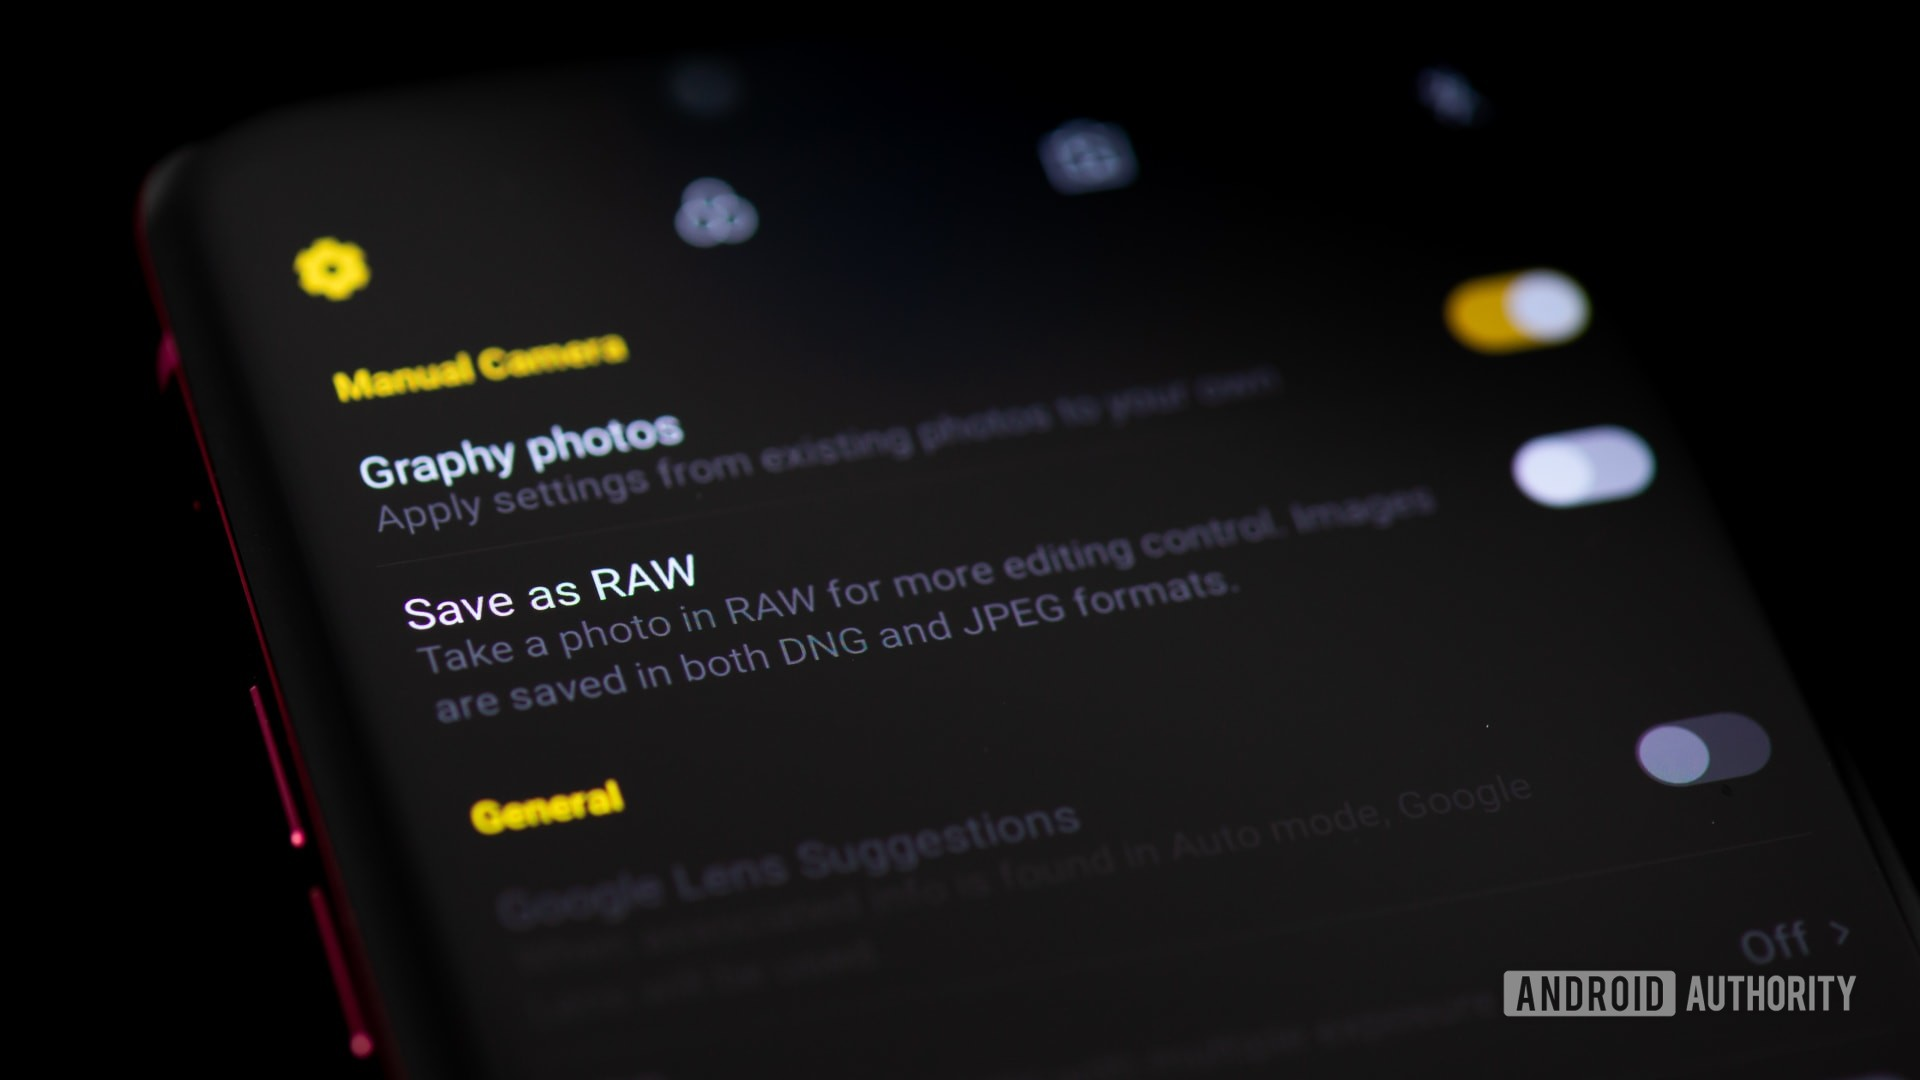 RAW photography option in smartphone camera settings